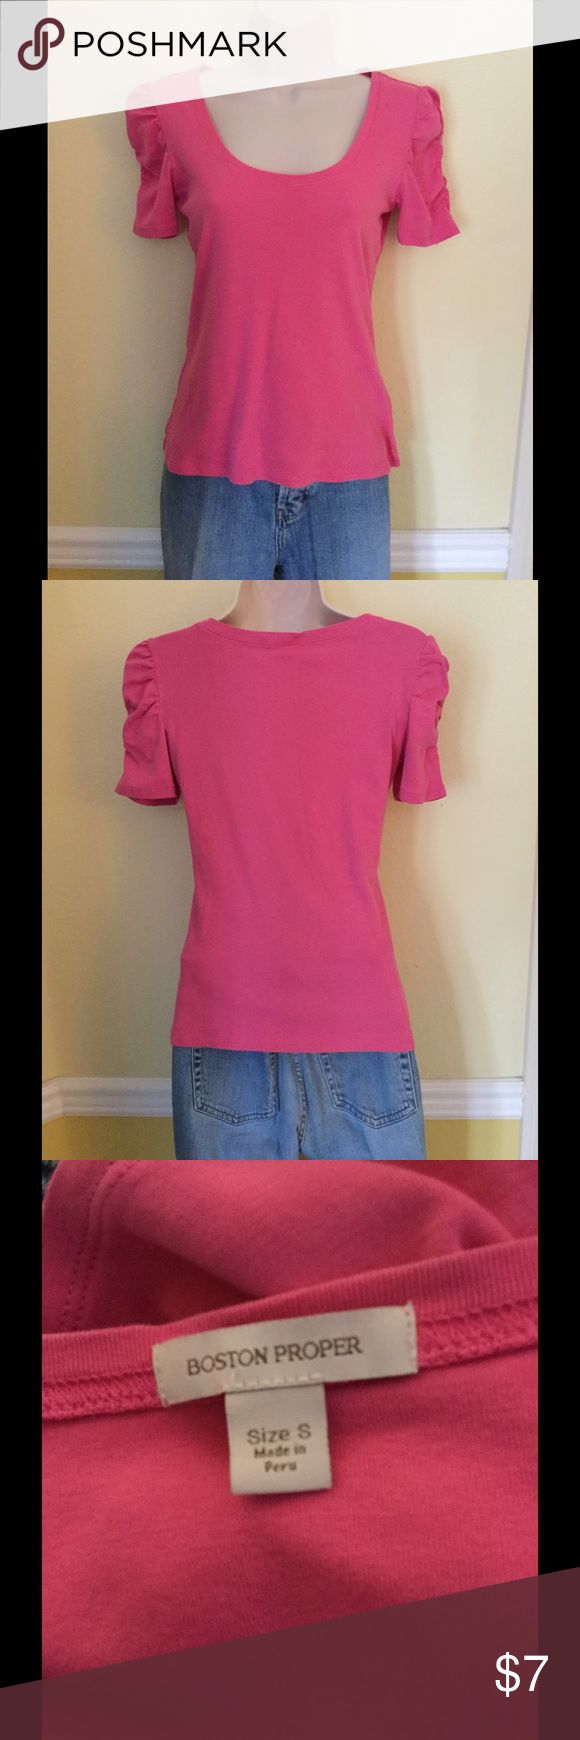 Boston Proper pink short sleeves top, size small Pink top with rounded neckline and gathered short sleeves by Boston Proper. Size small, 100% Pima cotton. Boston Proper Tops Tees - Short Sleeve